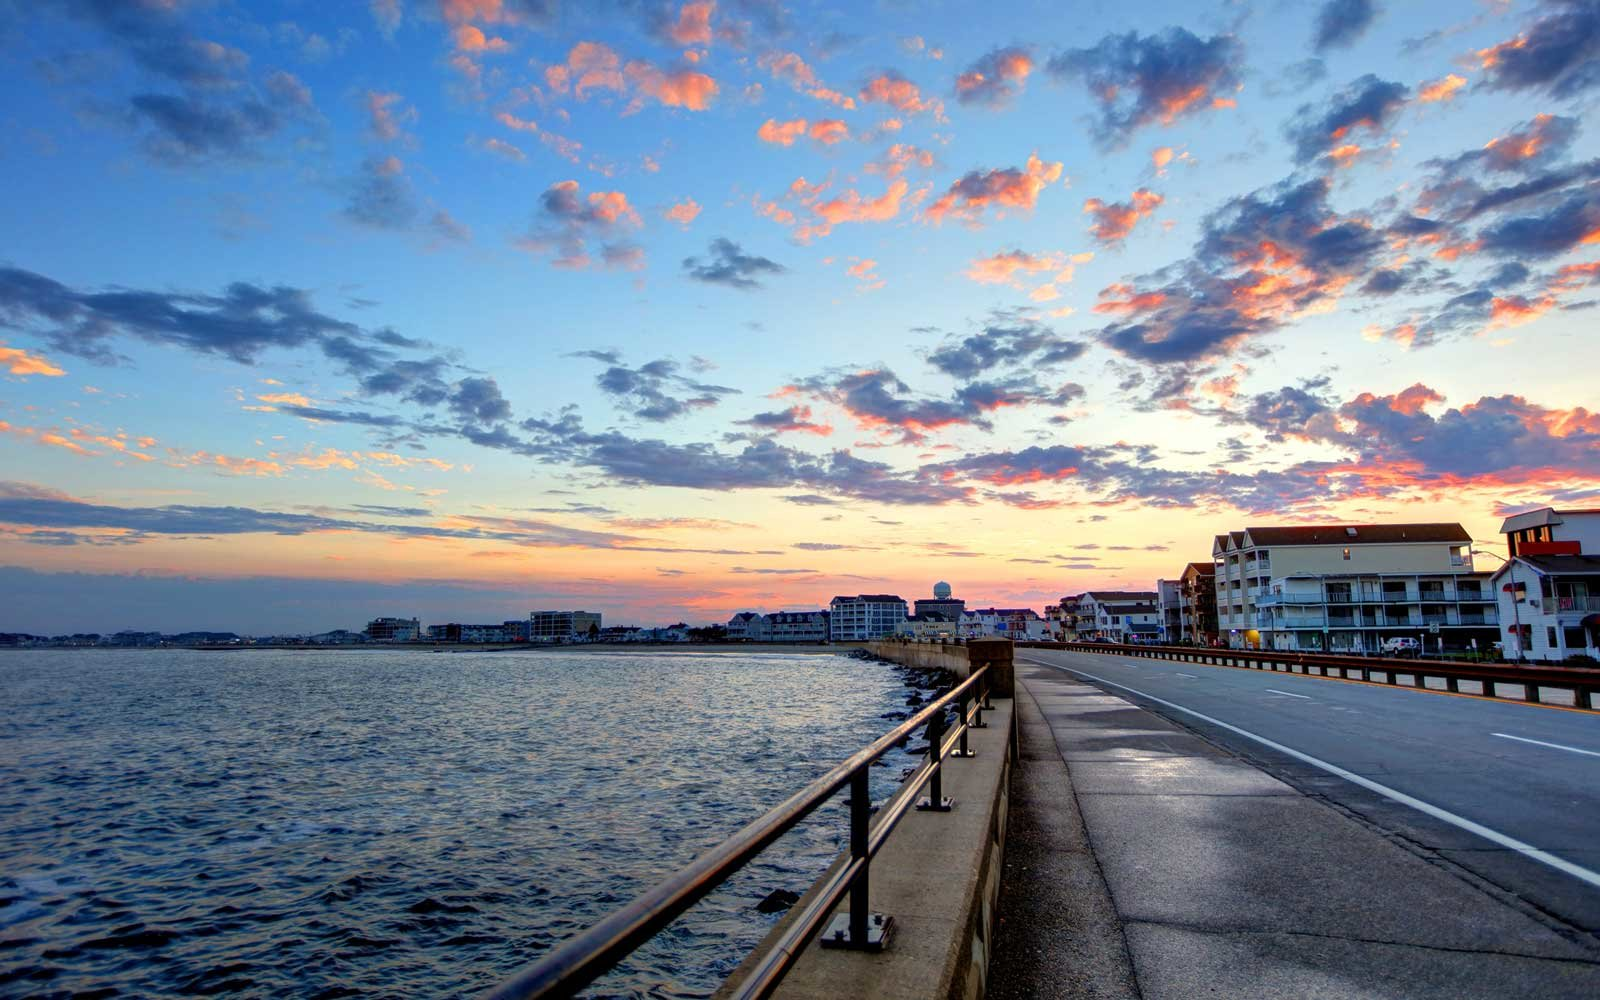 Hampton Beach is a beach resort in the town of Hampton, New Hampshire, United States